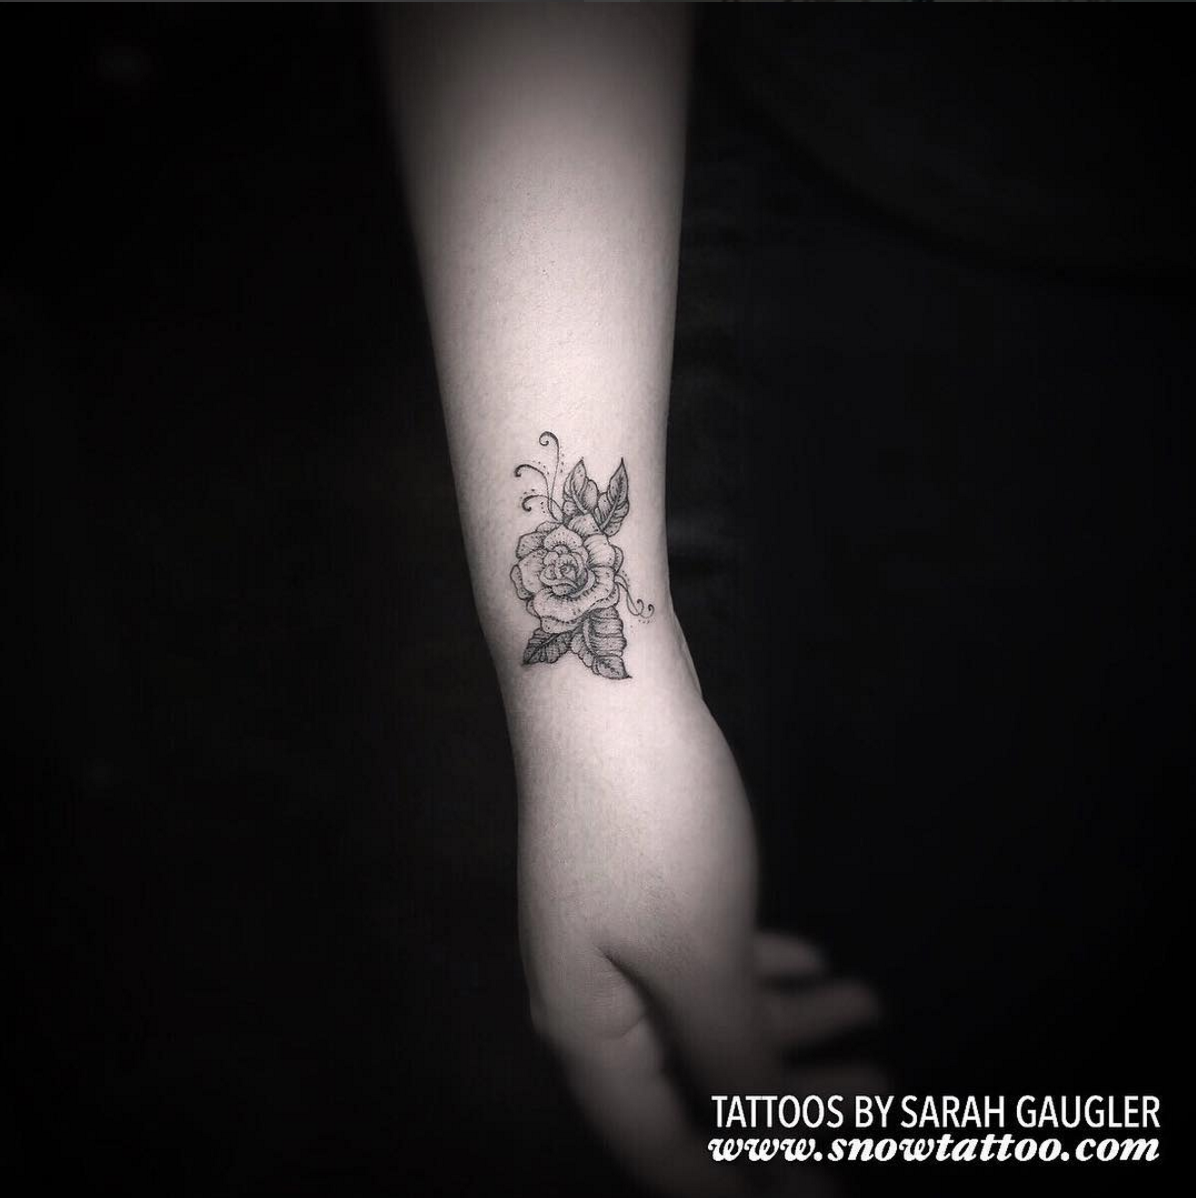 Sarah Gaugler Snow Tattoo Custom Rose Signature Desing Original Fine Line Detailed LineWork FineLine DetailedTattoos Intricate Tattoos New York Best Tattoos Best Tattoo Artist NYC.png